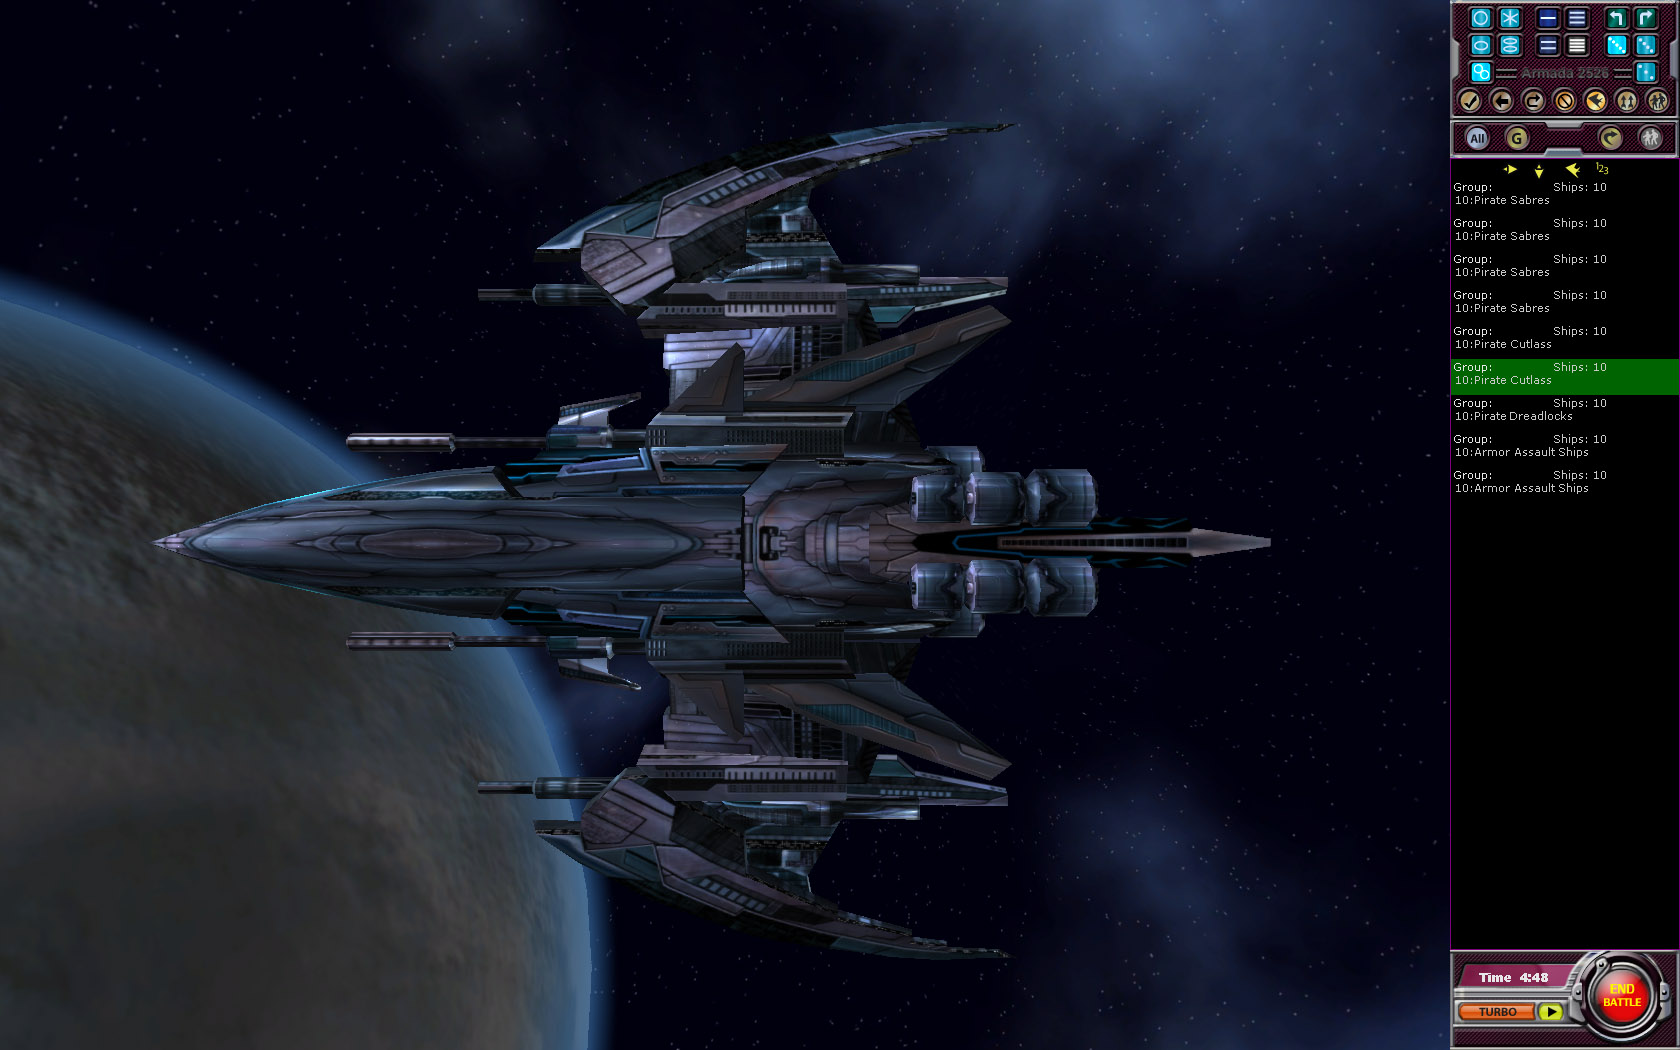 Although Armada 2526 has glorious sound and graphics that inspire and  immerse the player, the main focus is providing a great game play  experiences.